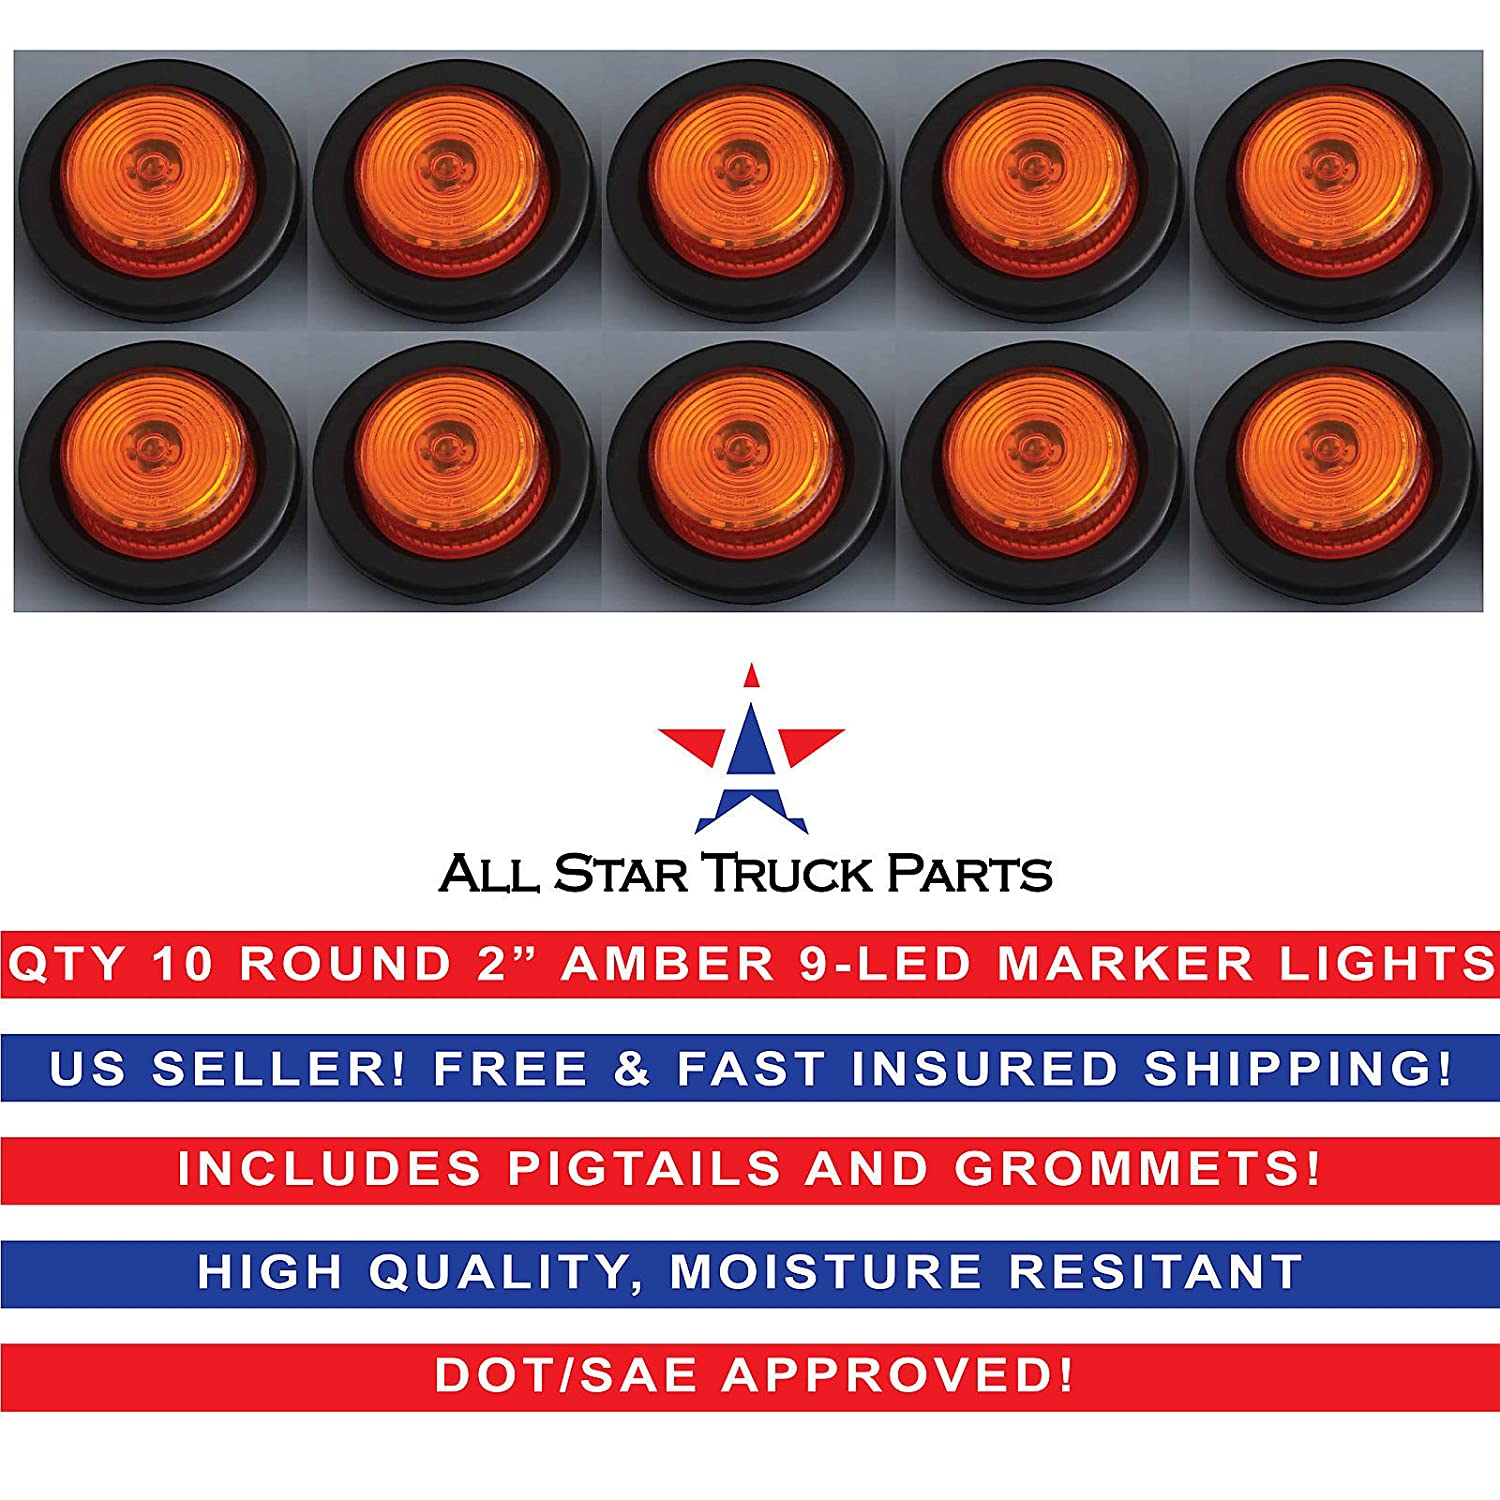 2 Round Amber 9 LED Light Trailer Side Marker Clearance Grommet Plug Qty 10 All Star Truck Parts